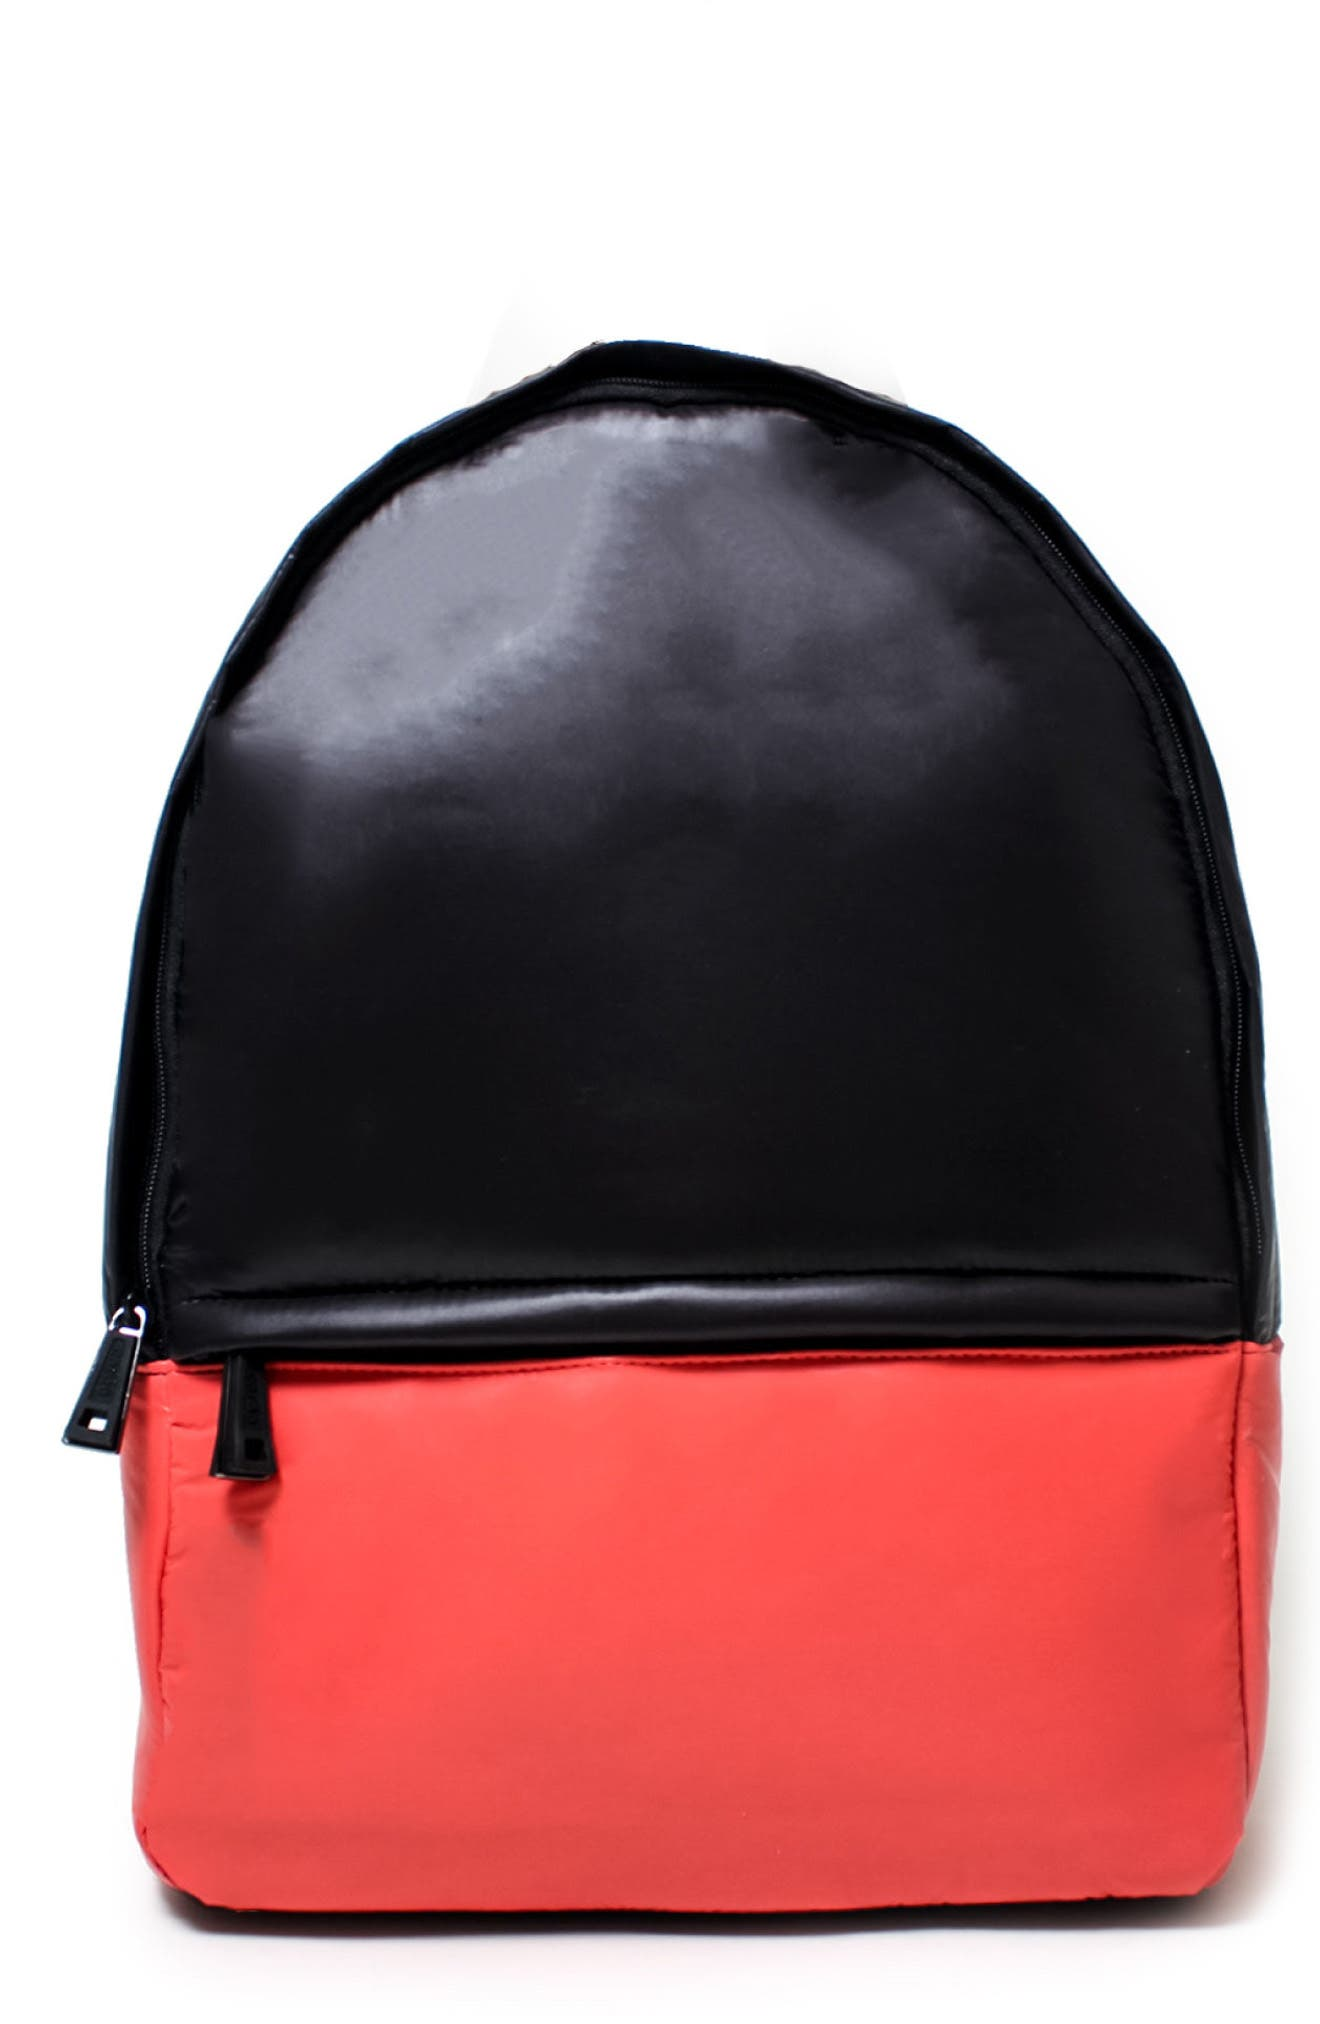 Main Image - Caraa Stratus Waterproof Backpack